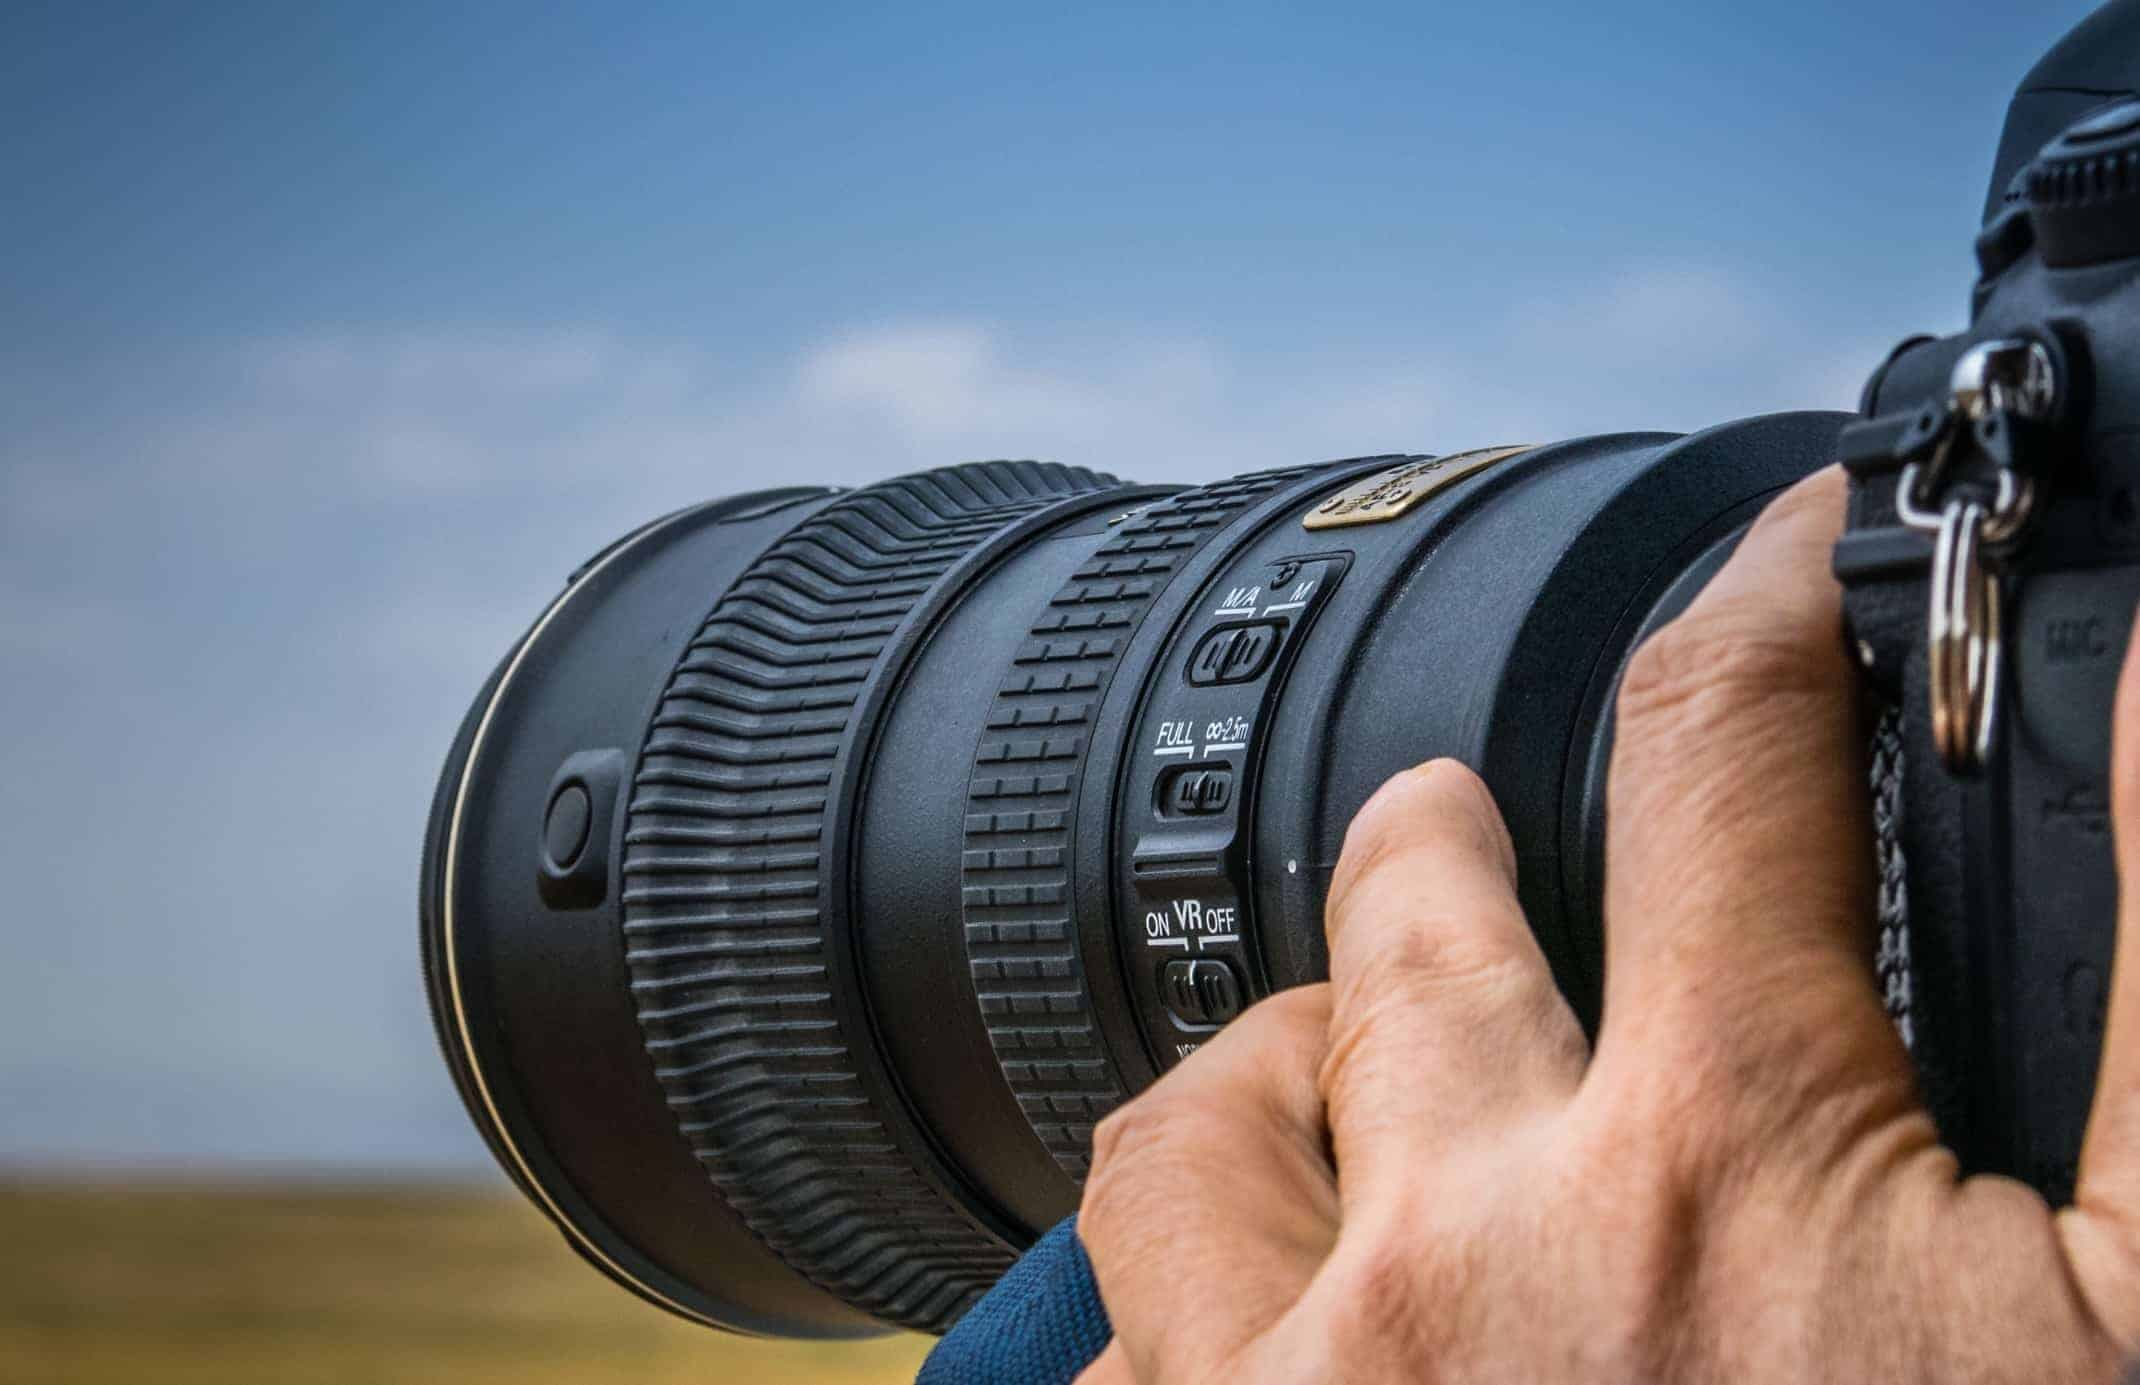 The Best Nikon Landscape Lenses Compared (7 Great Picks)